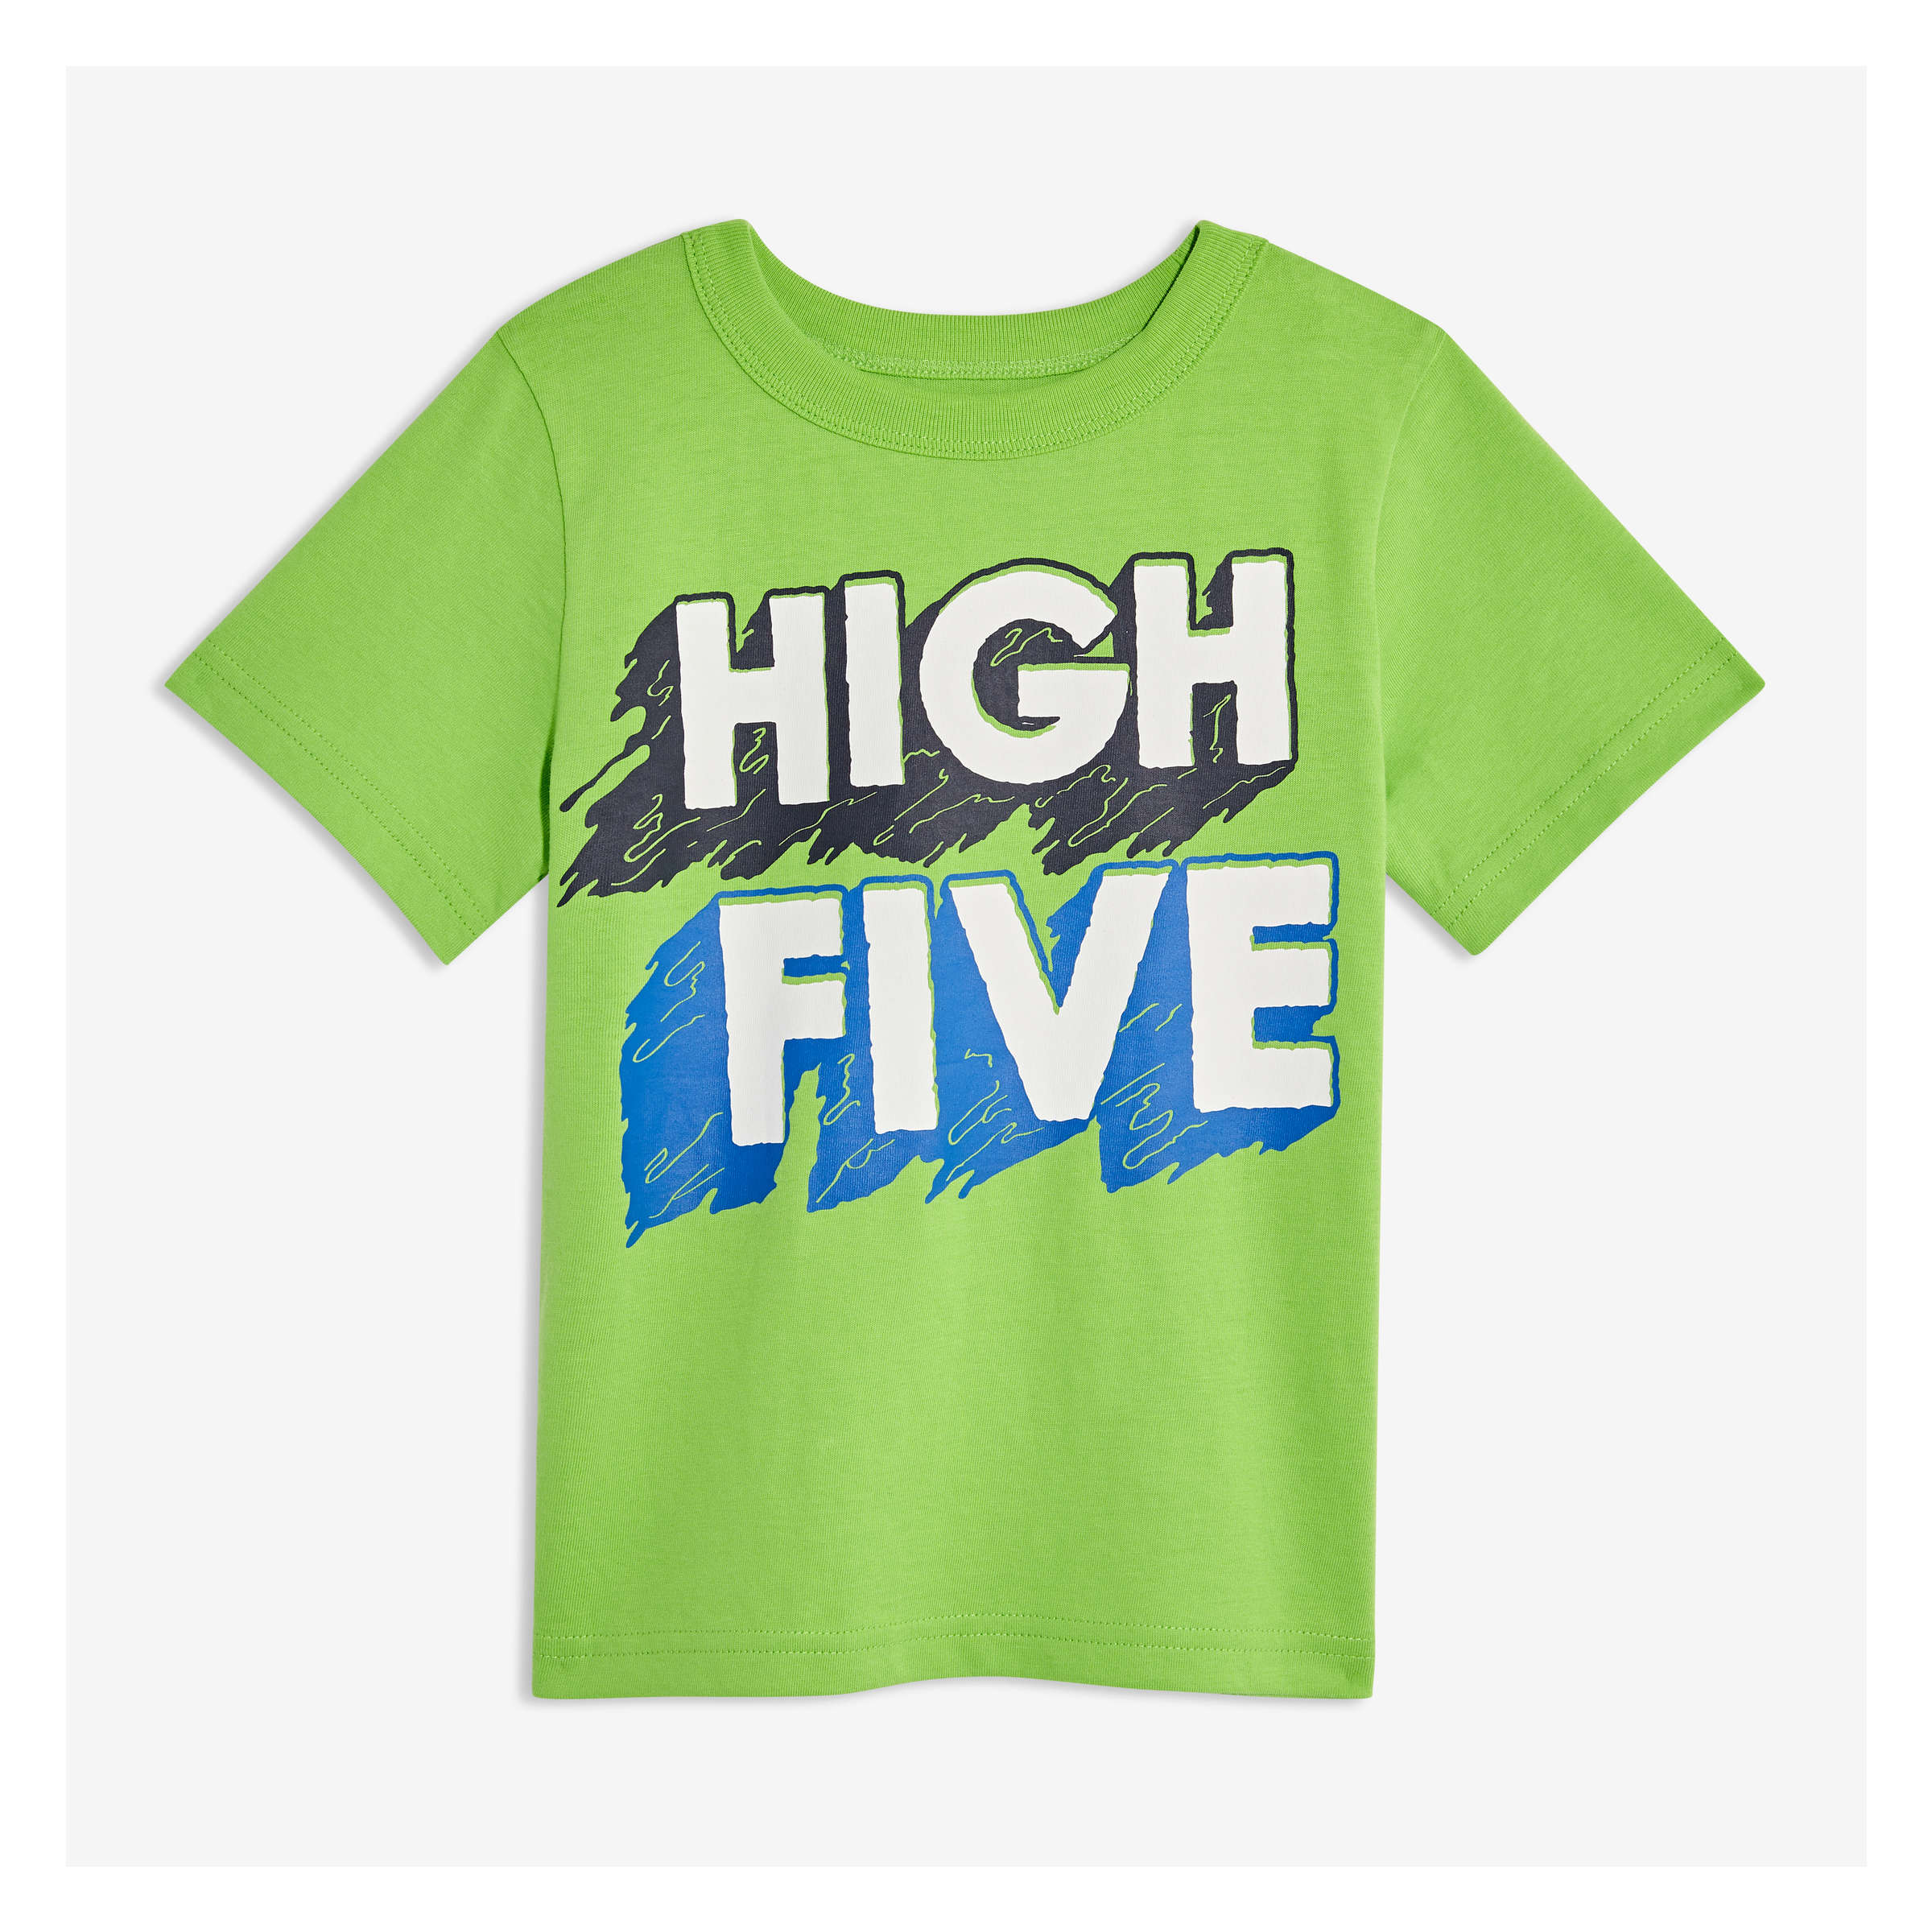 d304ce4ee Toddler Boys' Graphic Tee in Bright Green from Joe Fresh